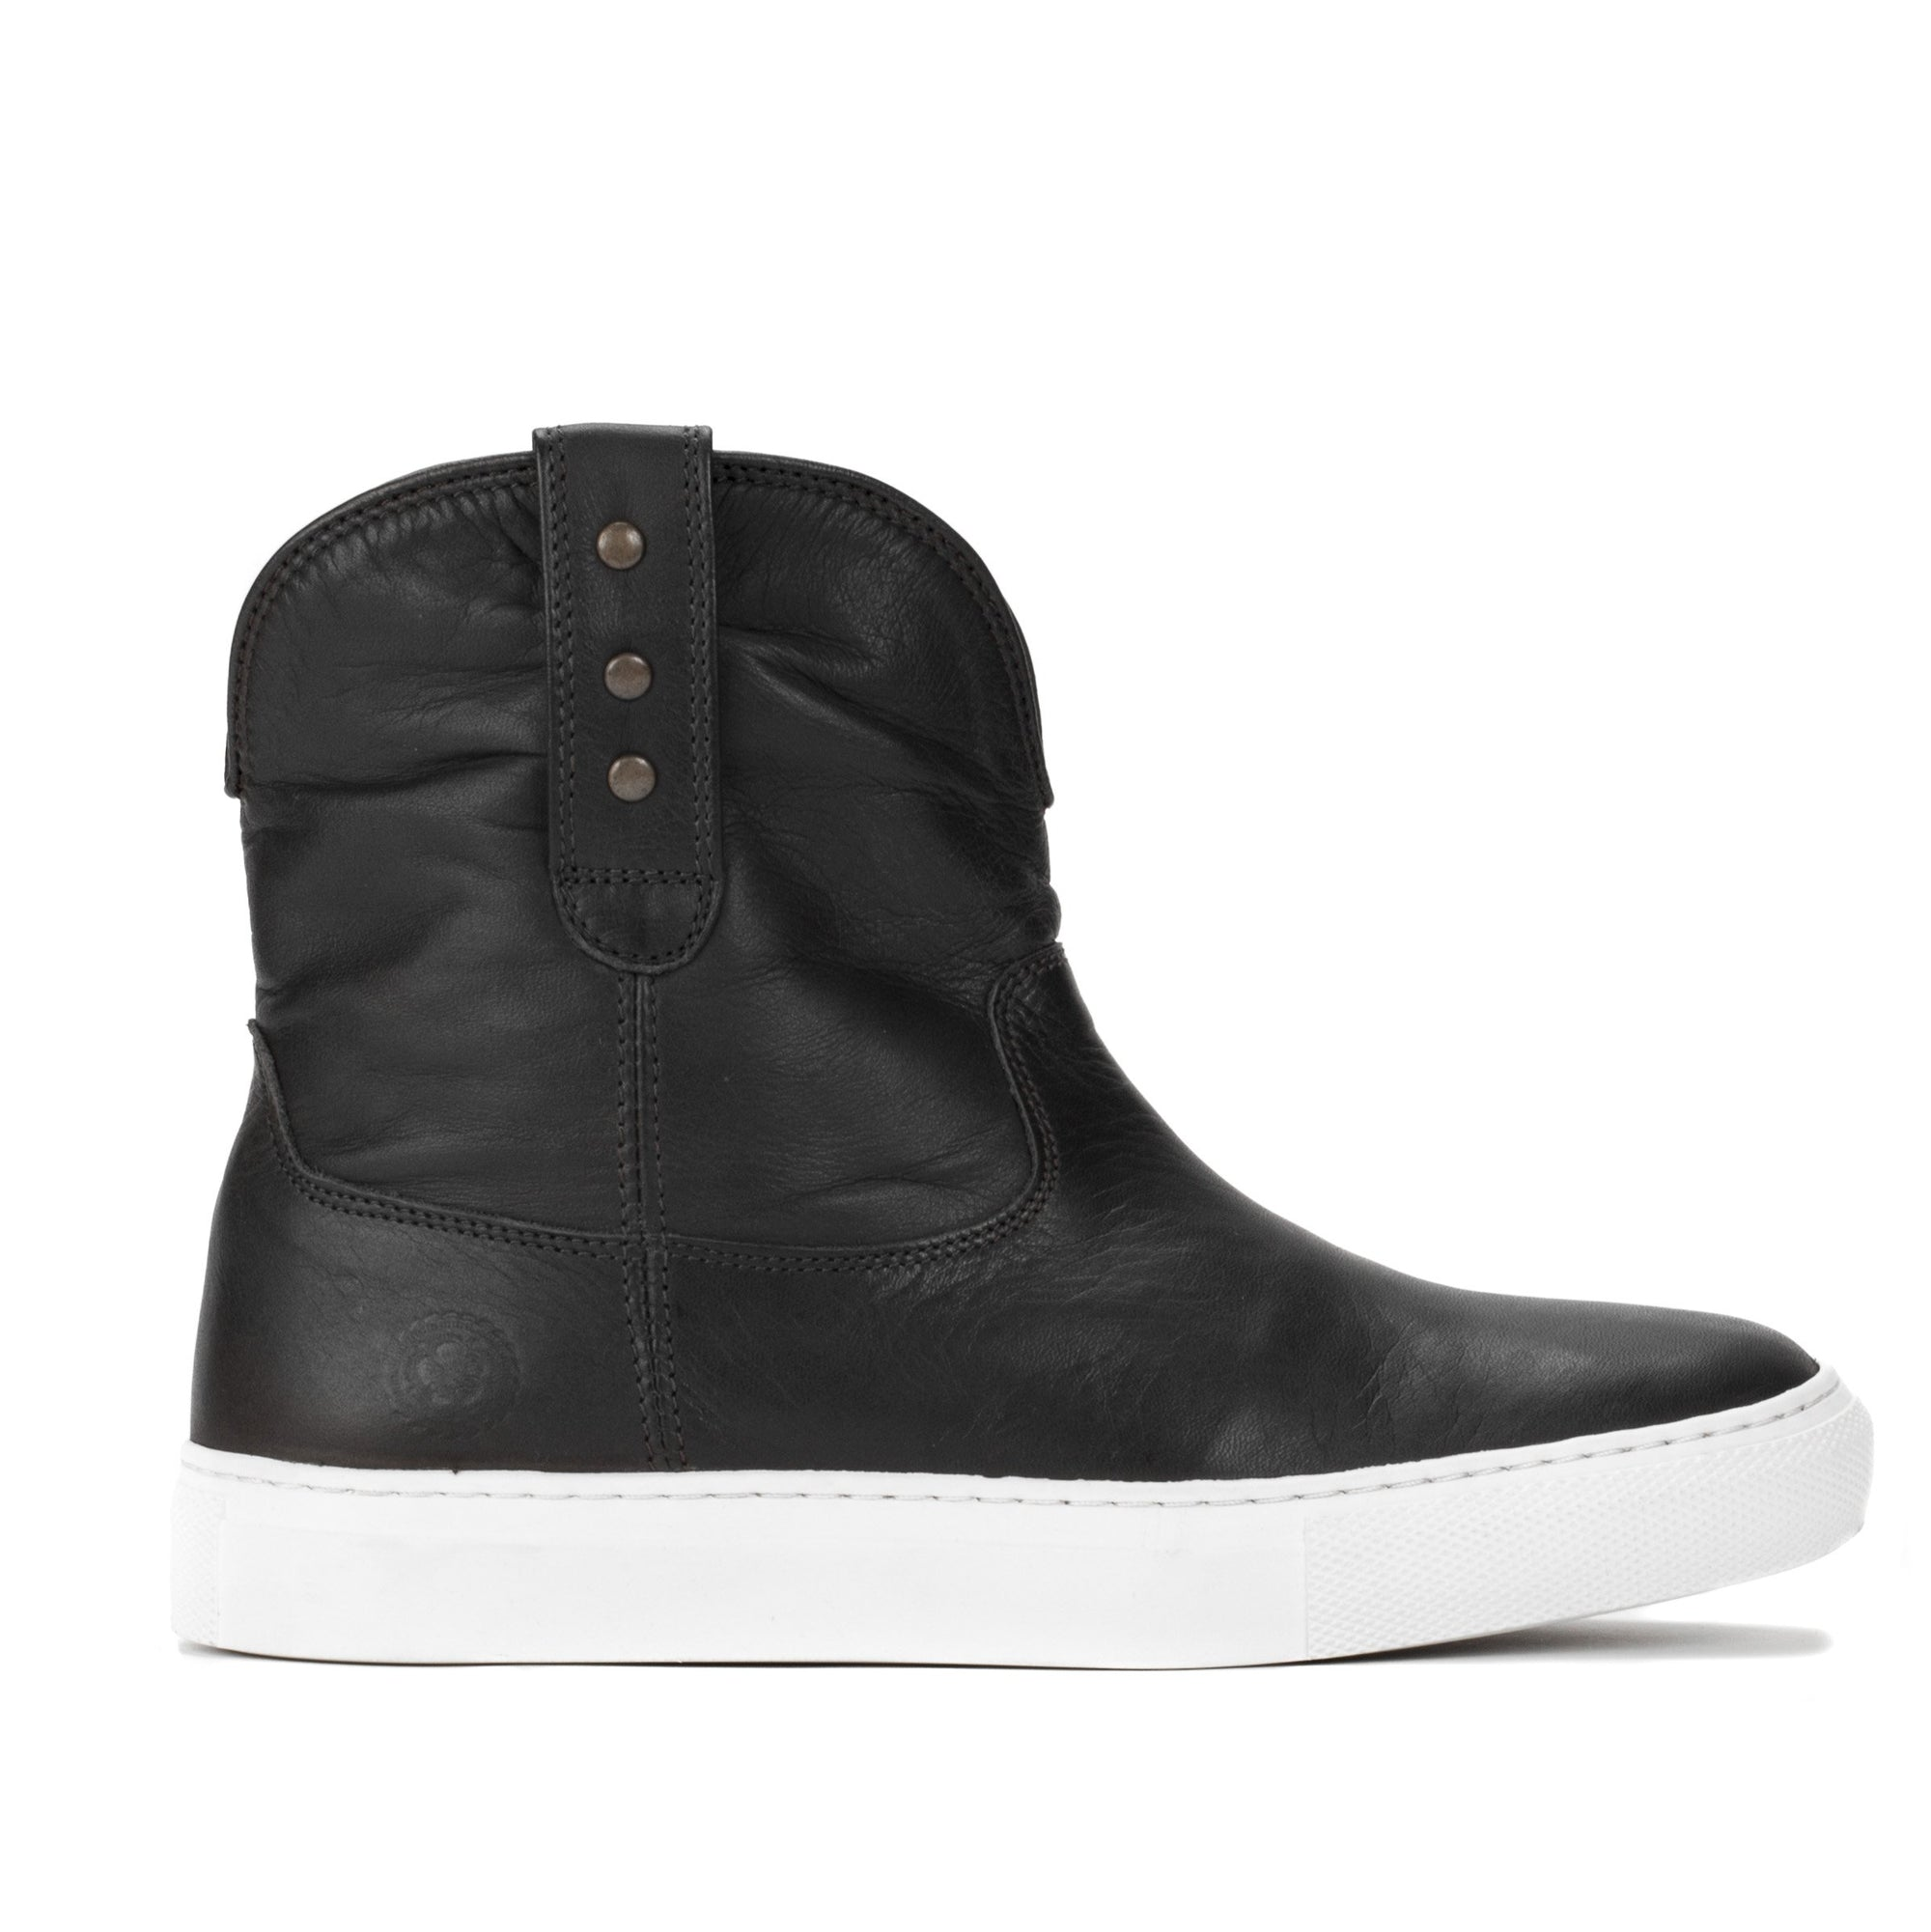 Womens Harper Black Handmade Leather Sneaker Boots - Ranch Road Boots™